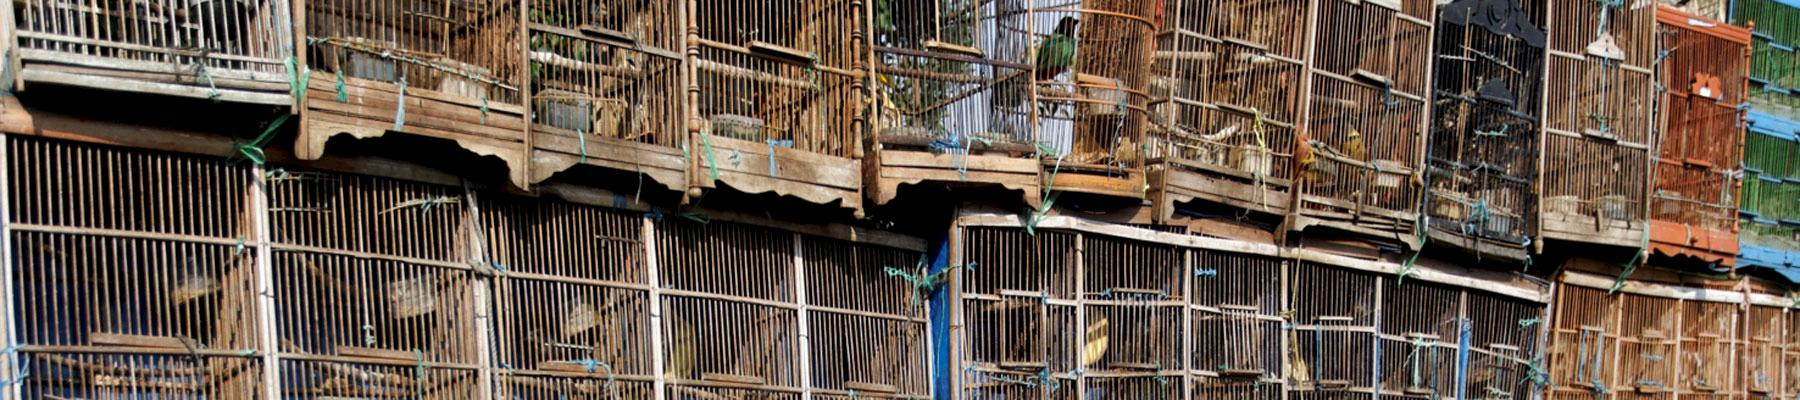 Rows of songbirds in cages for sale © Mikelane45 / Dreamstime.com